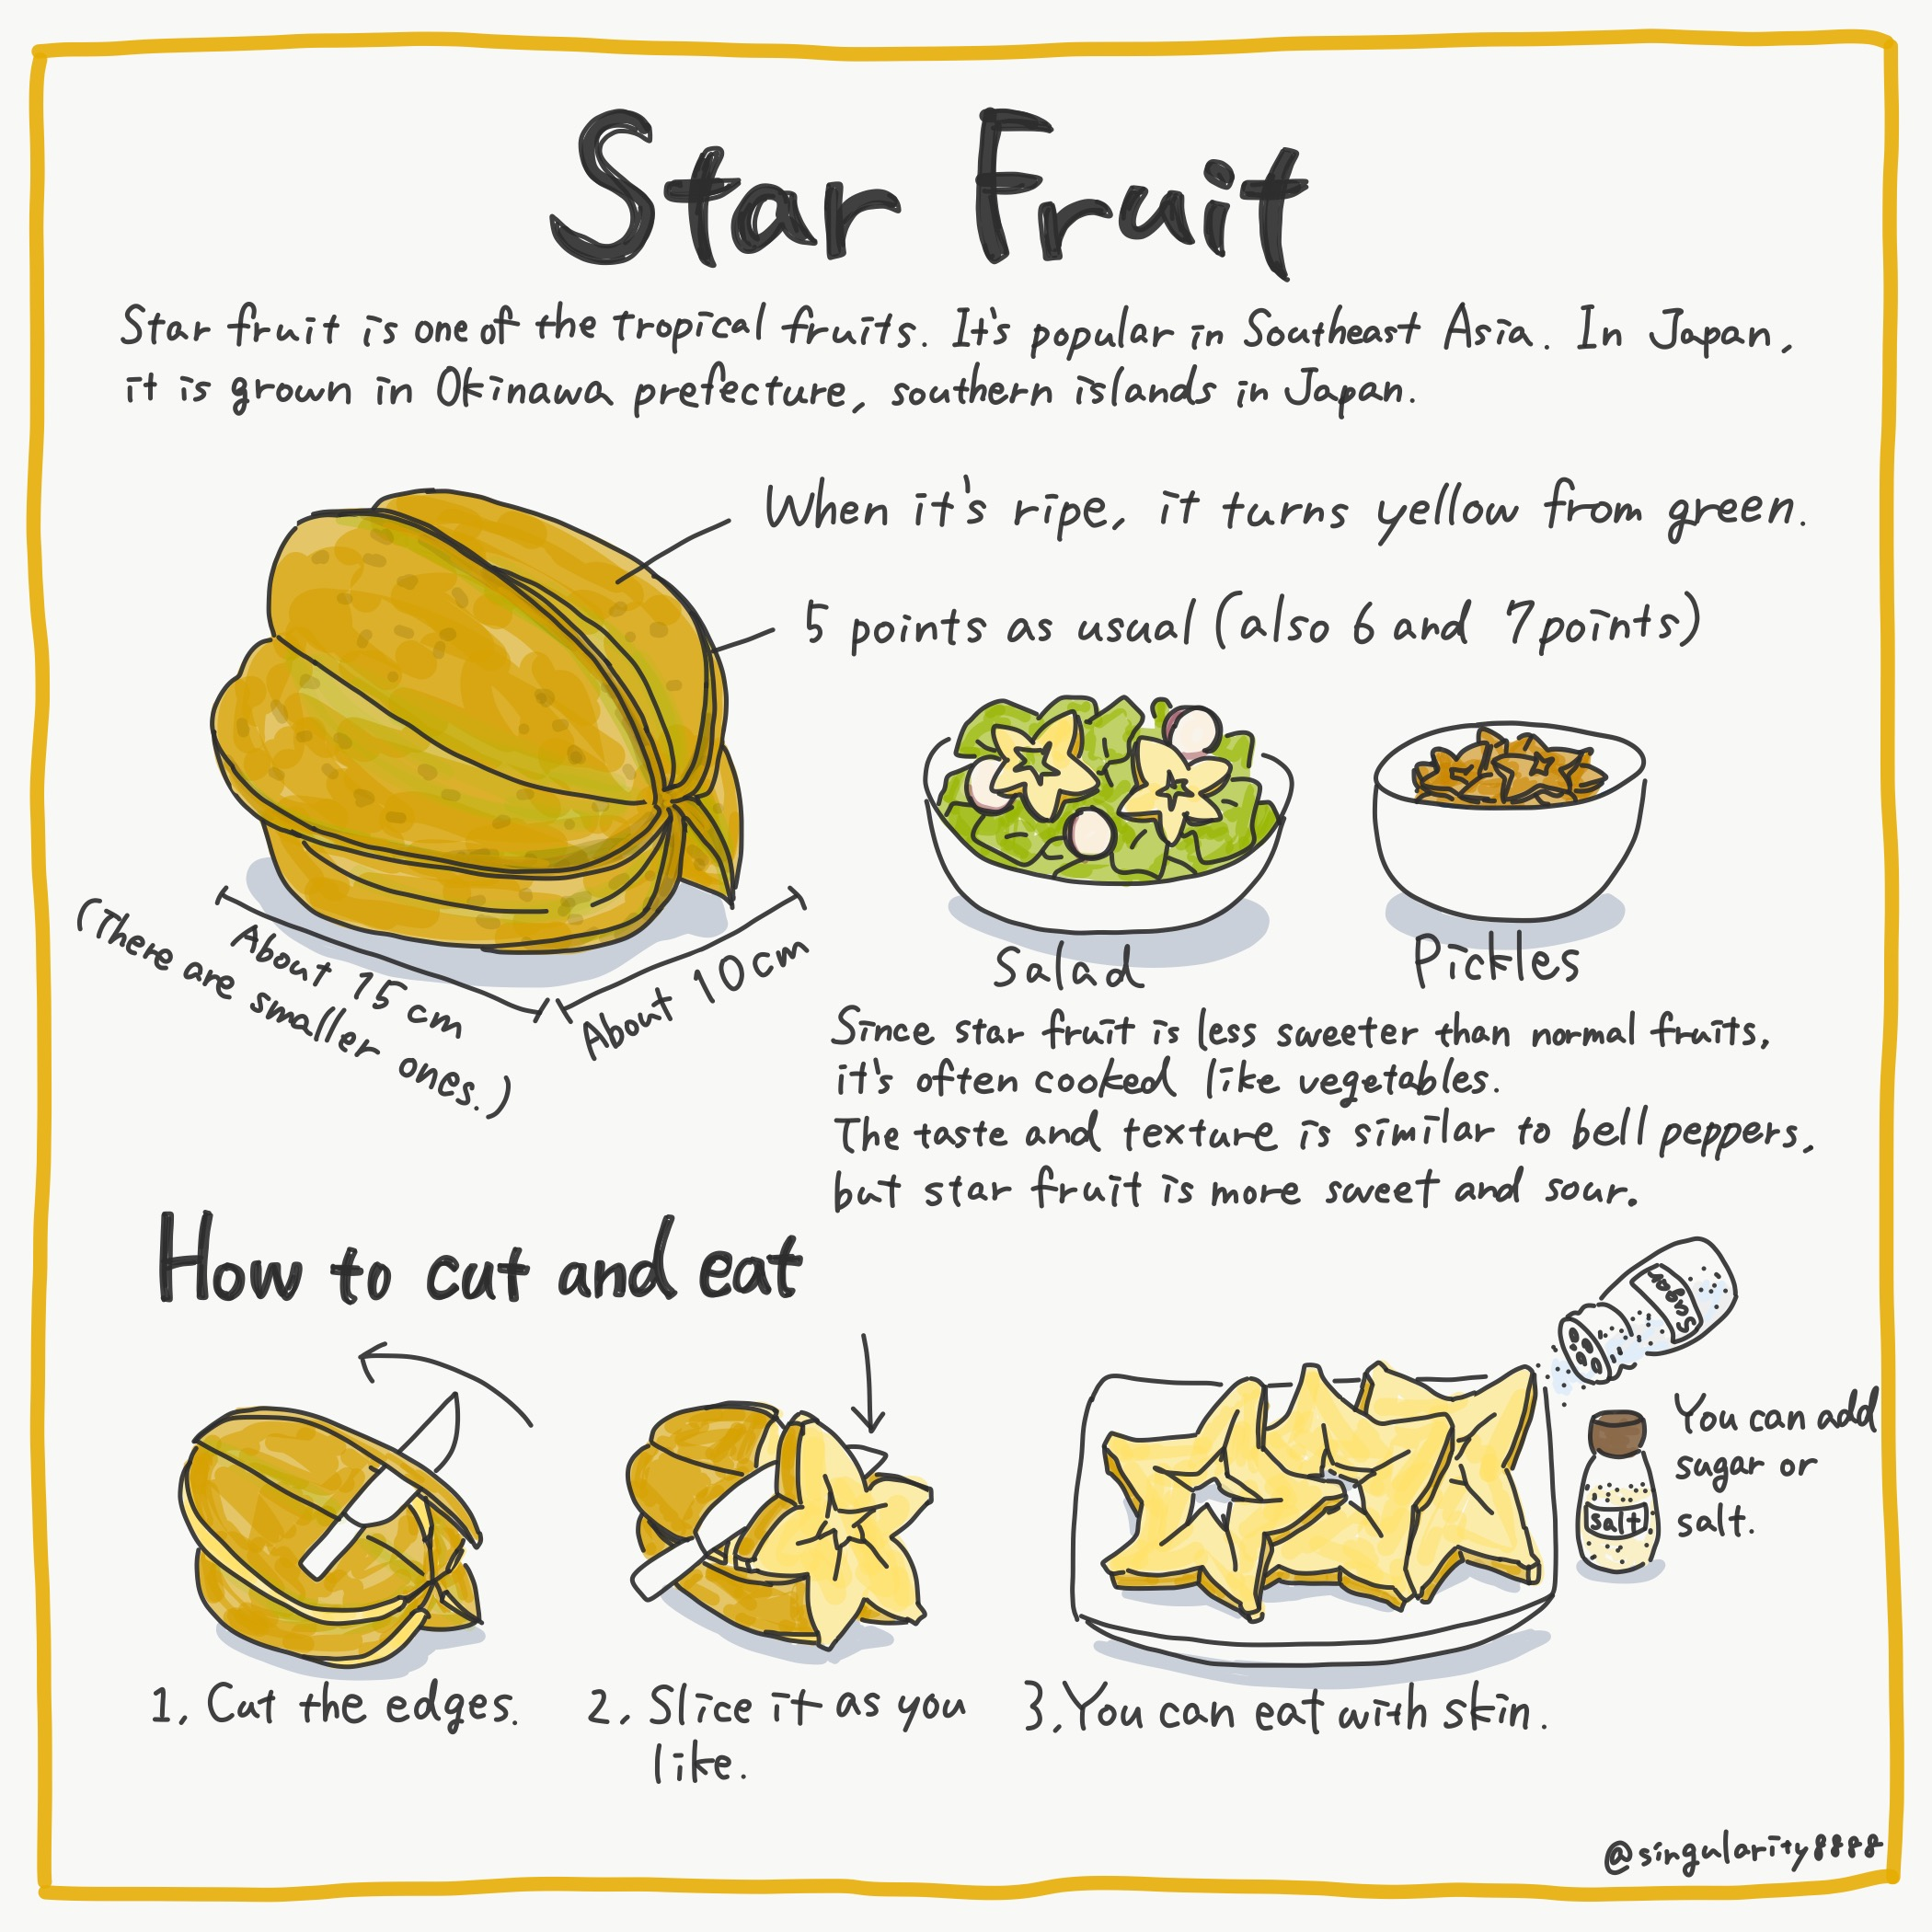 Star Fruit Image